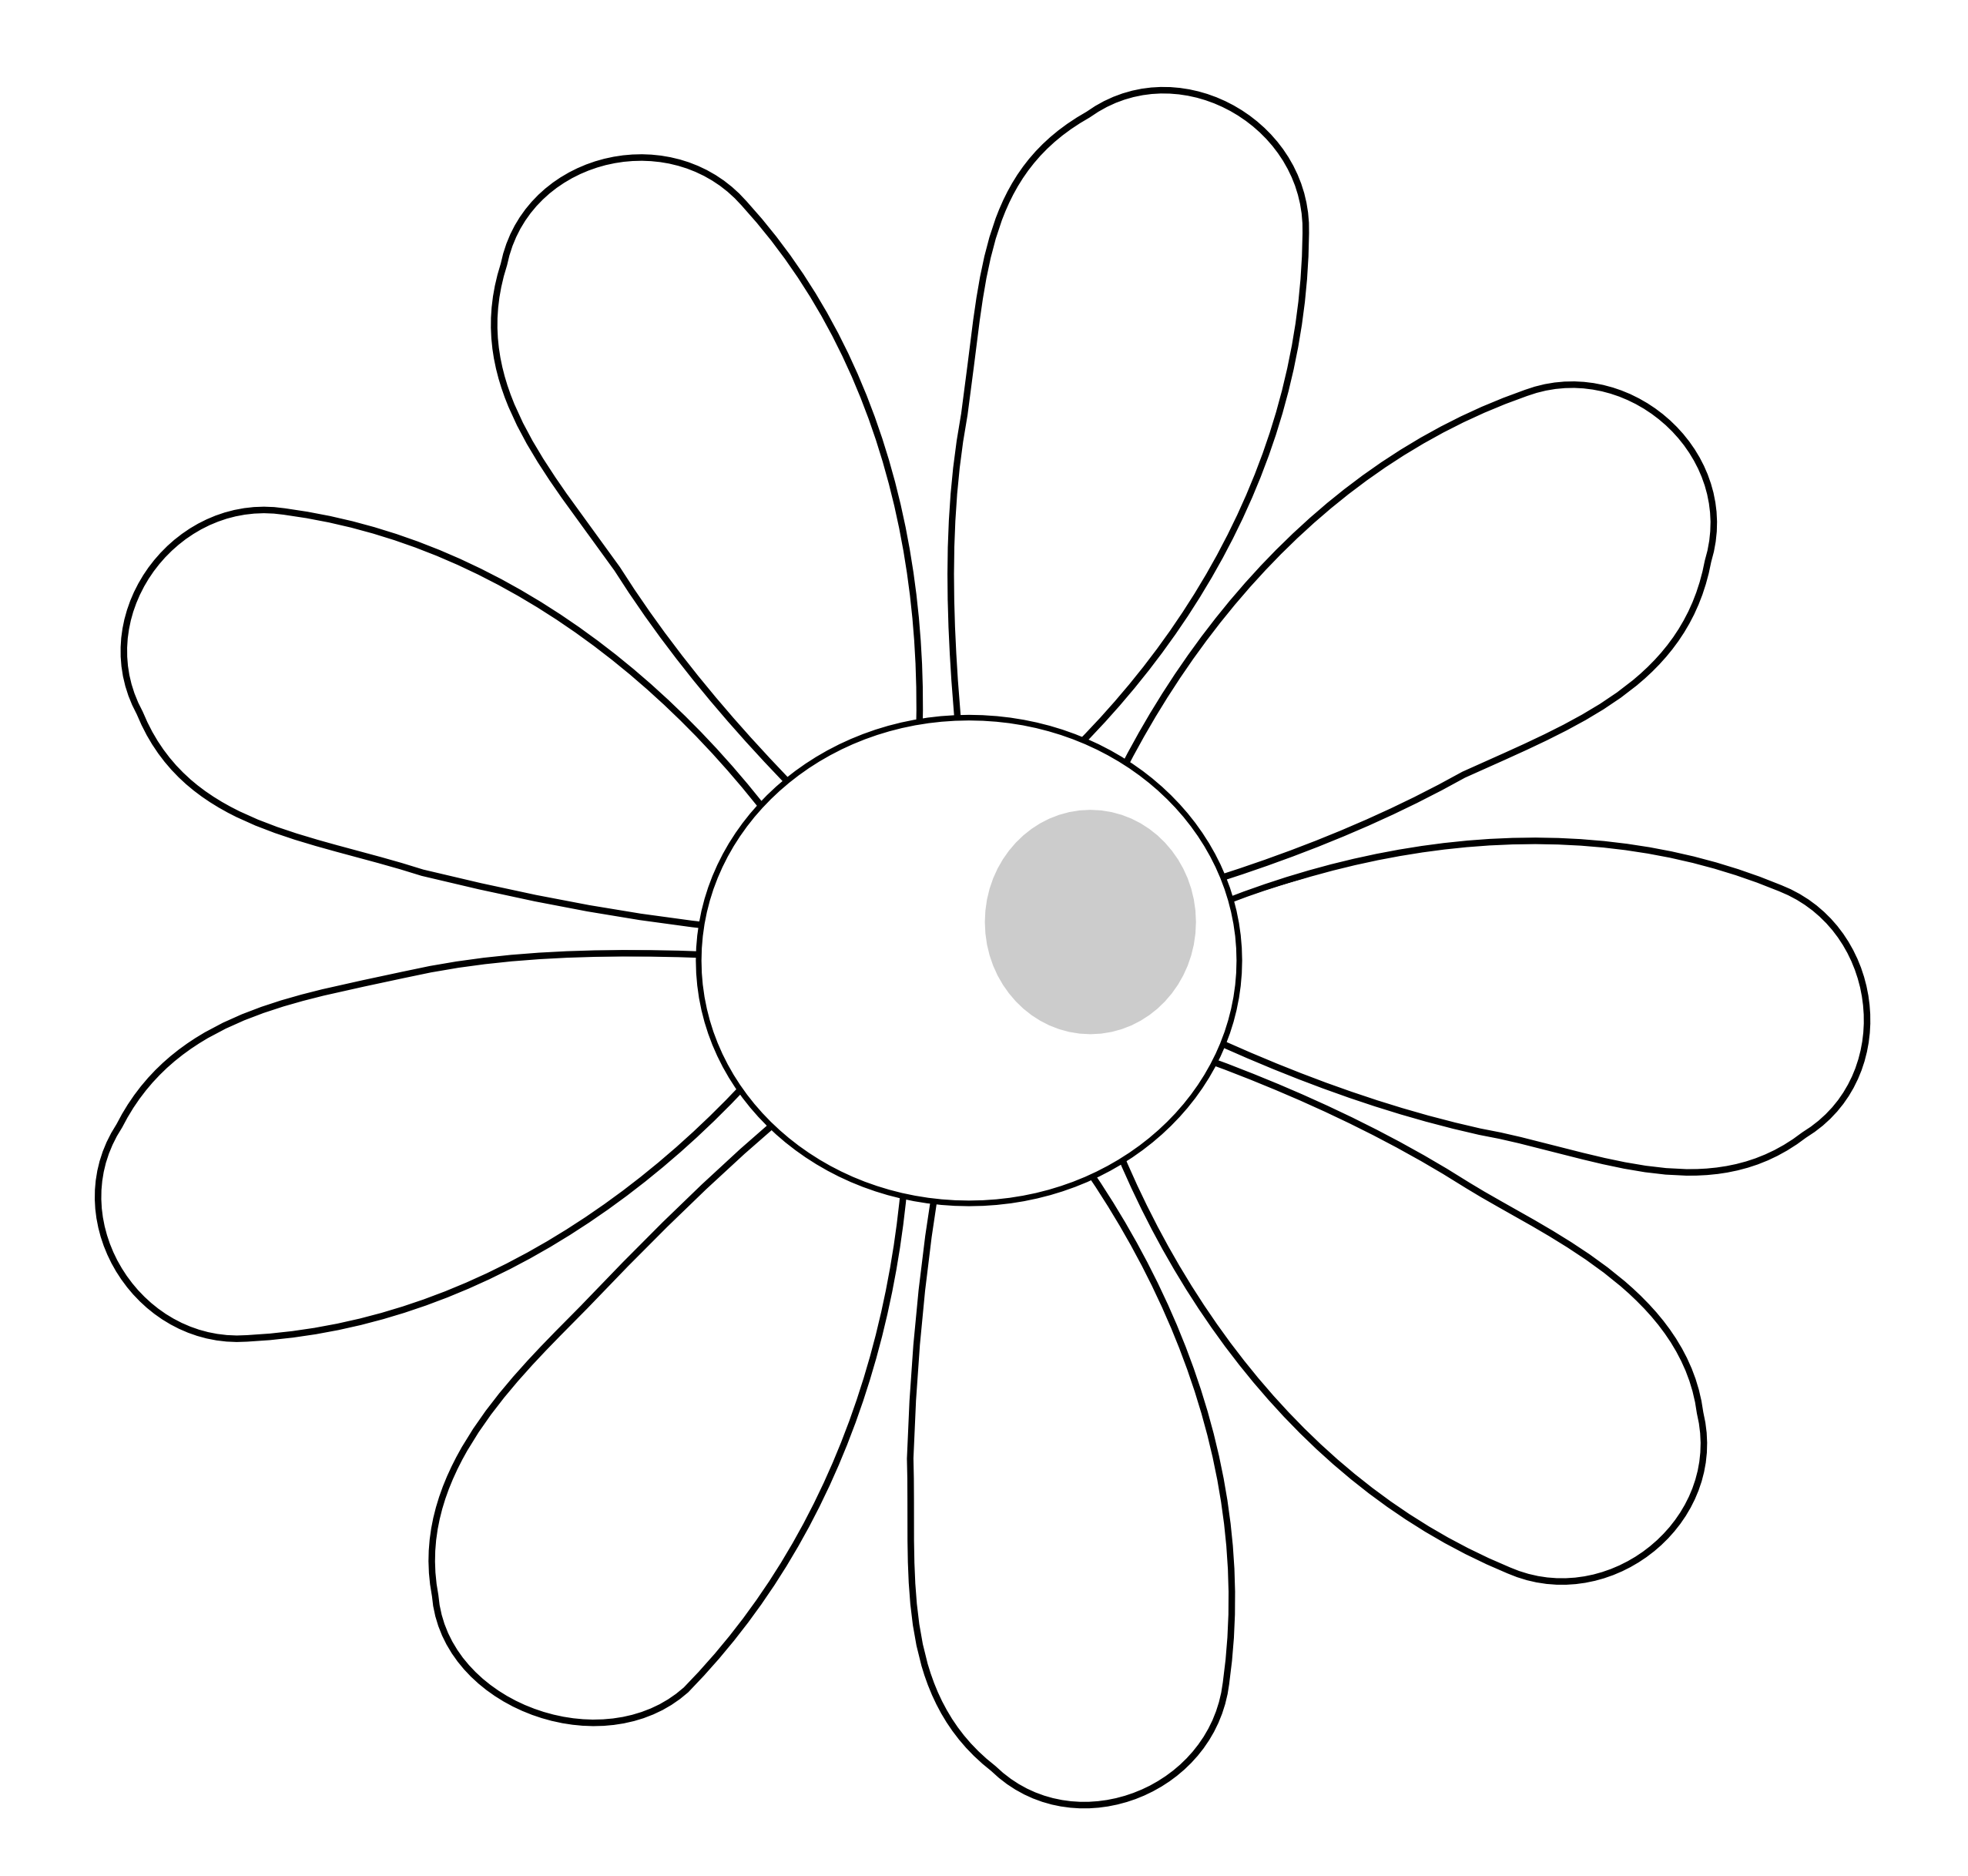 Daisy Flower 7 Black White Line Art Scalable Vector Graphics.